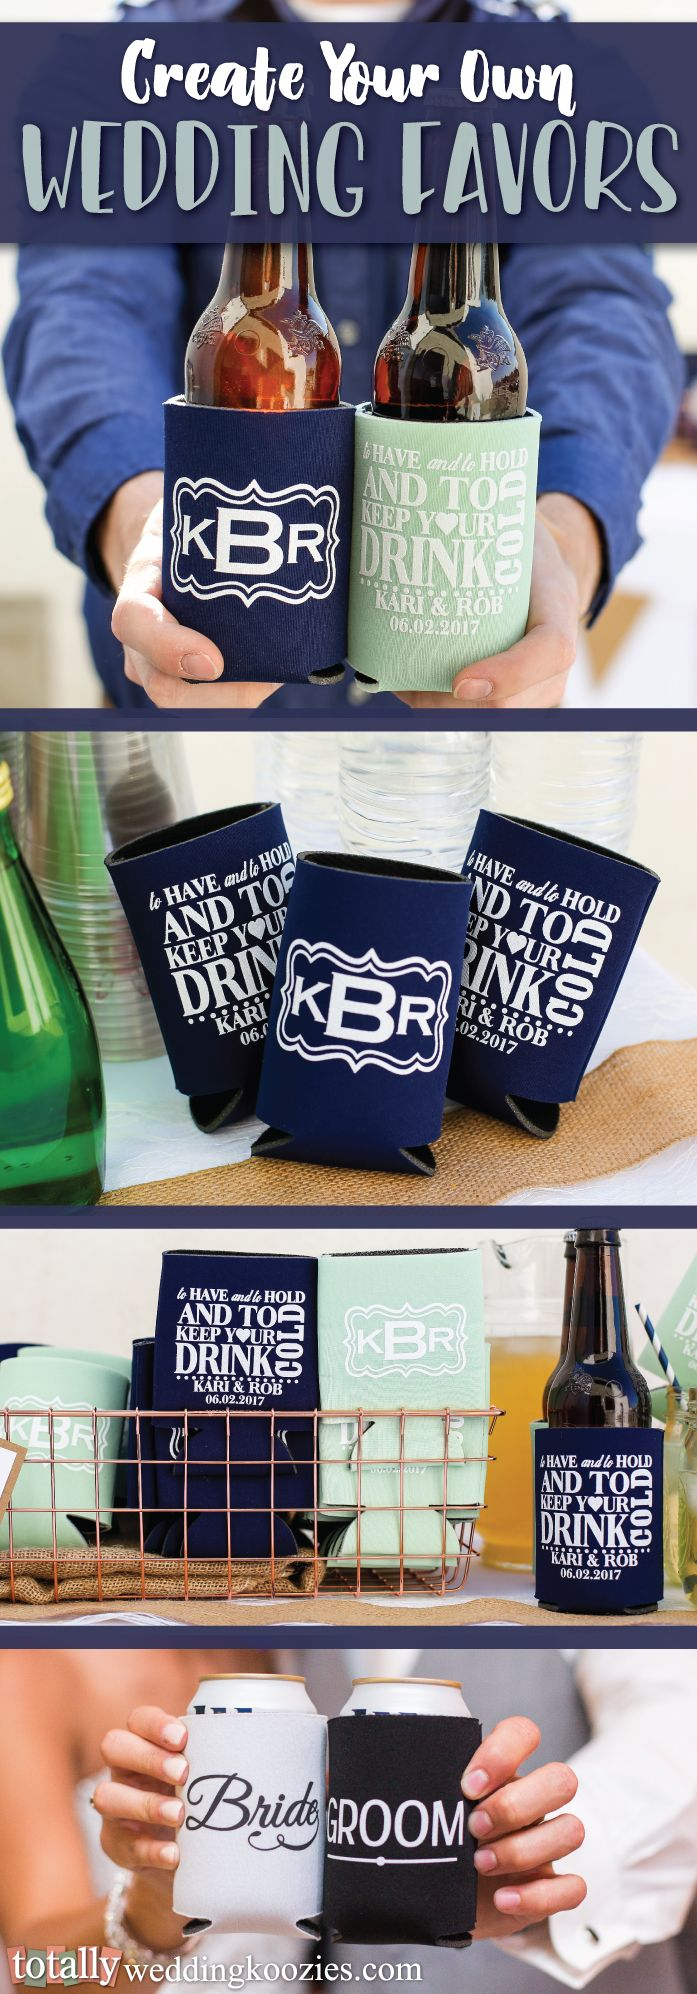 To Have & To Hold & To Keep Your Beer or Drink Cold! That's just what our #koozies do, create your perfect wedding favor with us as we have a wide selection of designs, sayings and templates to compliment your wedding! Every wedding koozie order also comes with a FREE complimentary bride & groom koozie! Use coupon code PINNER10 and receive 10% off your wedding koozie order! Sale applies to piece price only, not valid with other coupon codes and expires December 31, 2016!